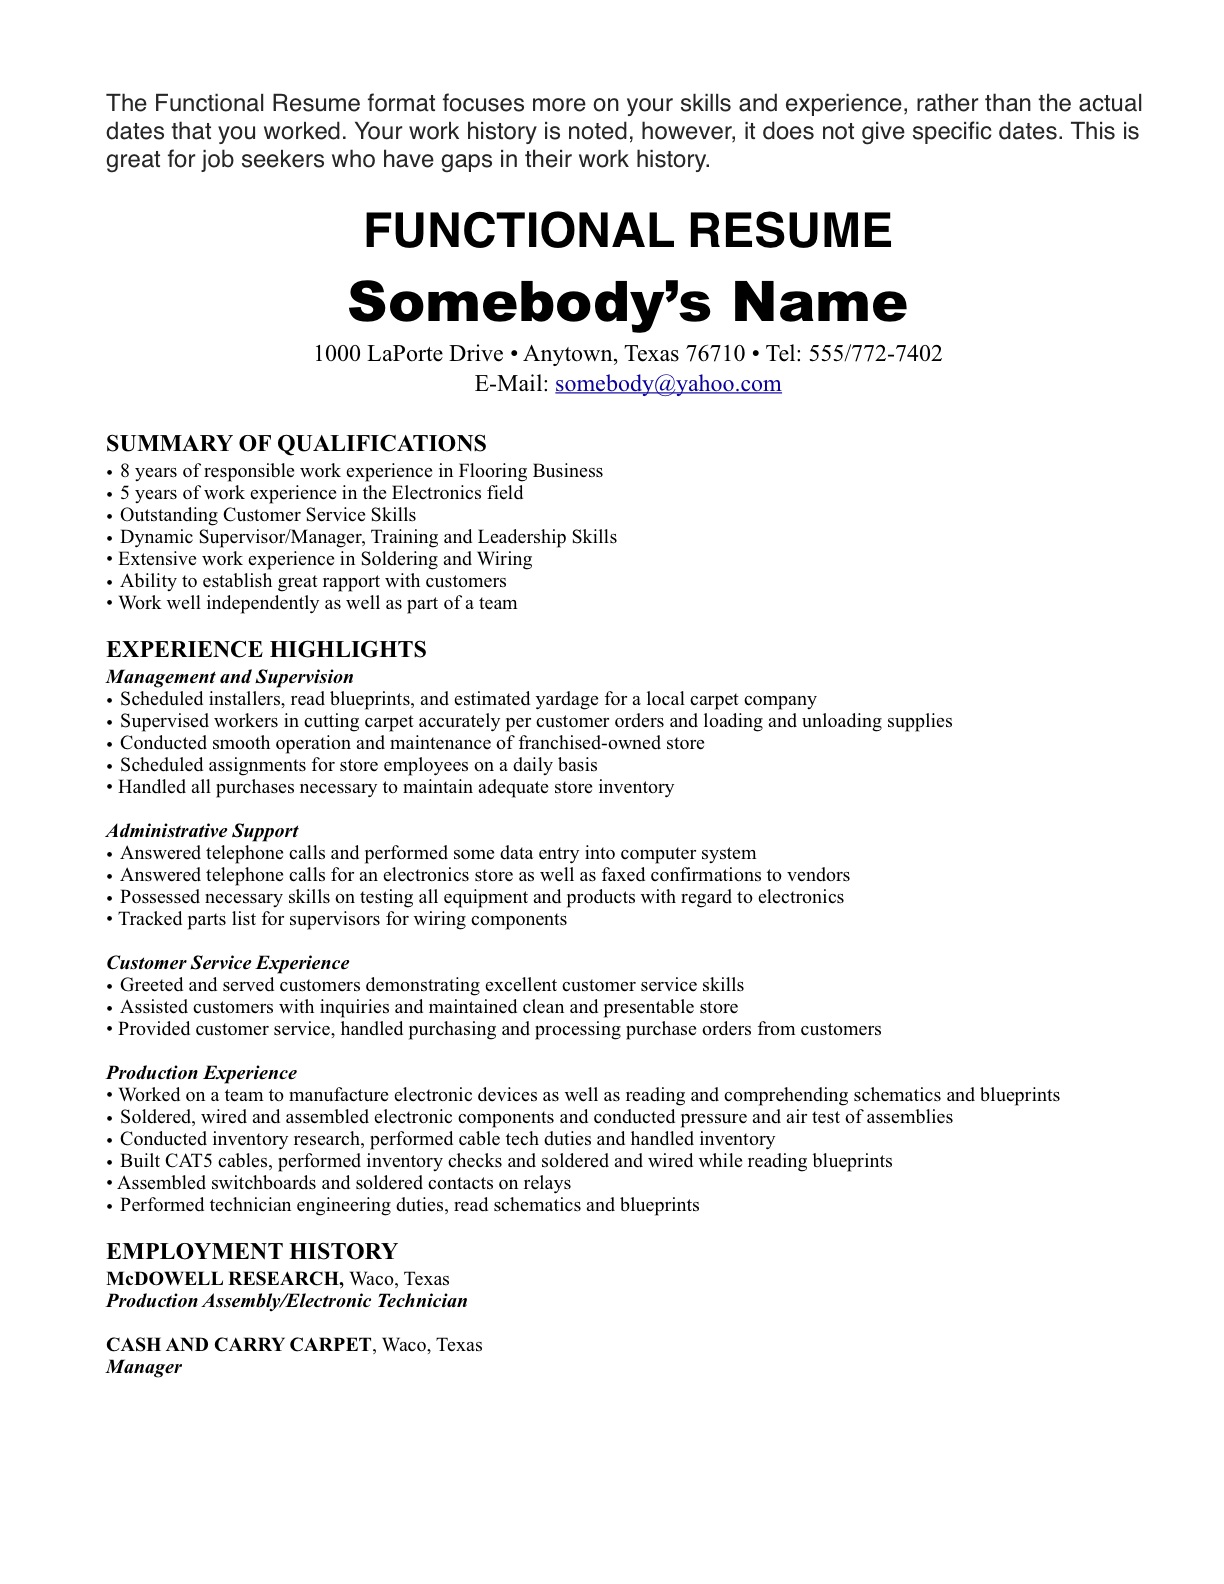 resume examples with no work history - Employment History Resume